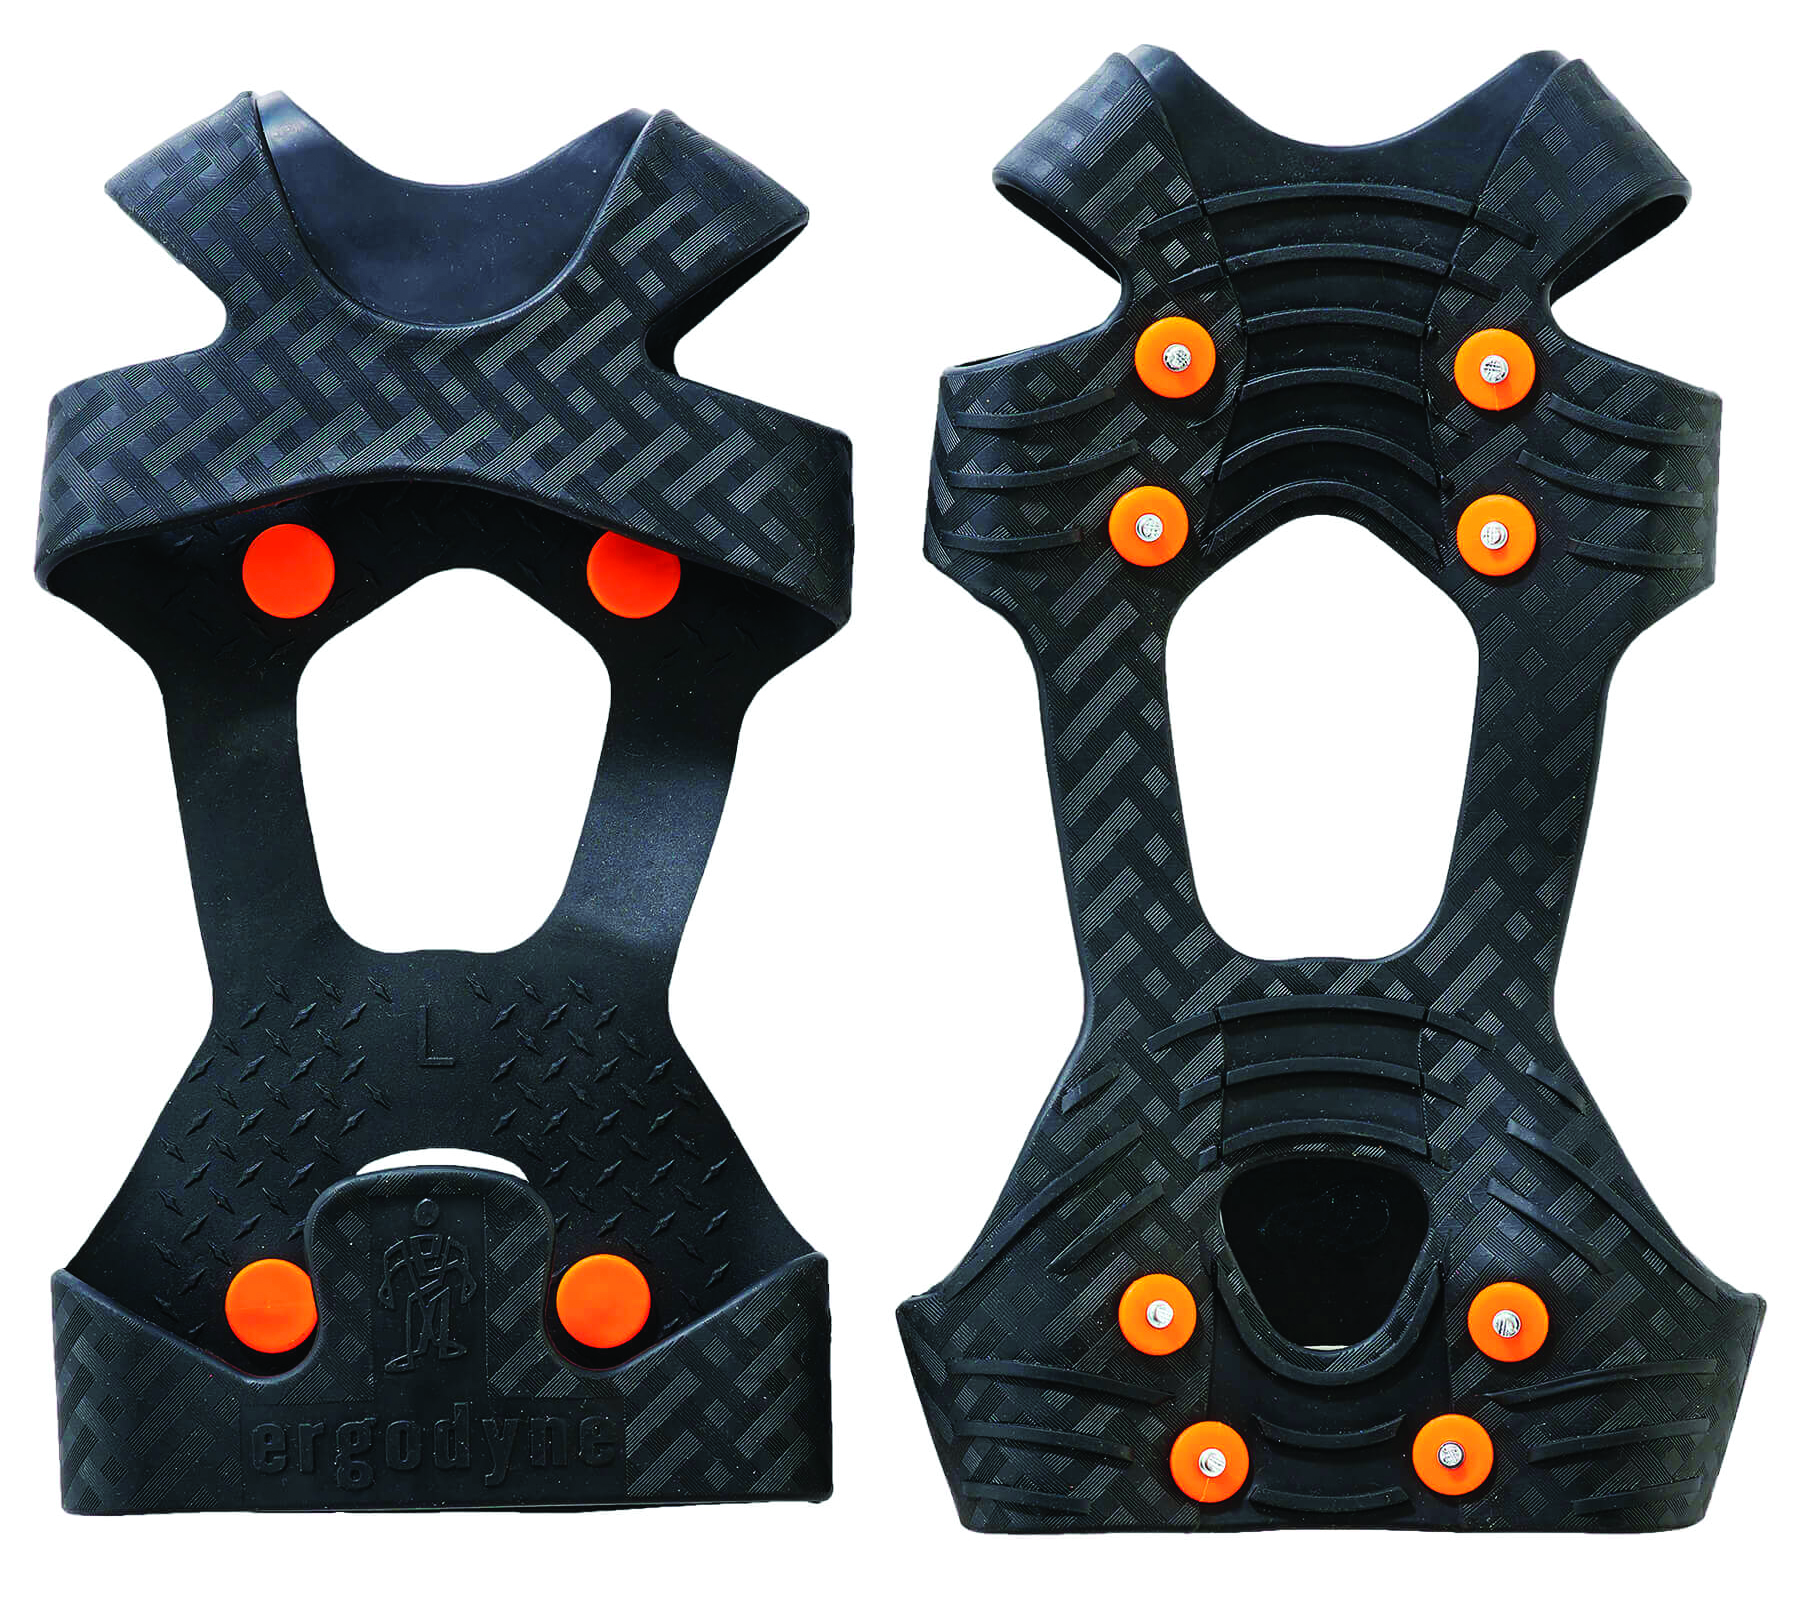 16753 - TREX 6300 Ice Traction Devices-TREX 6300 Ice Traction Devices-Medium - US Mens 5-8----UOM: 1/PR